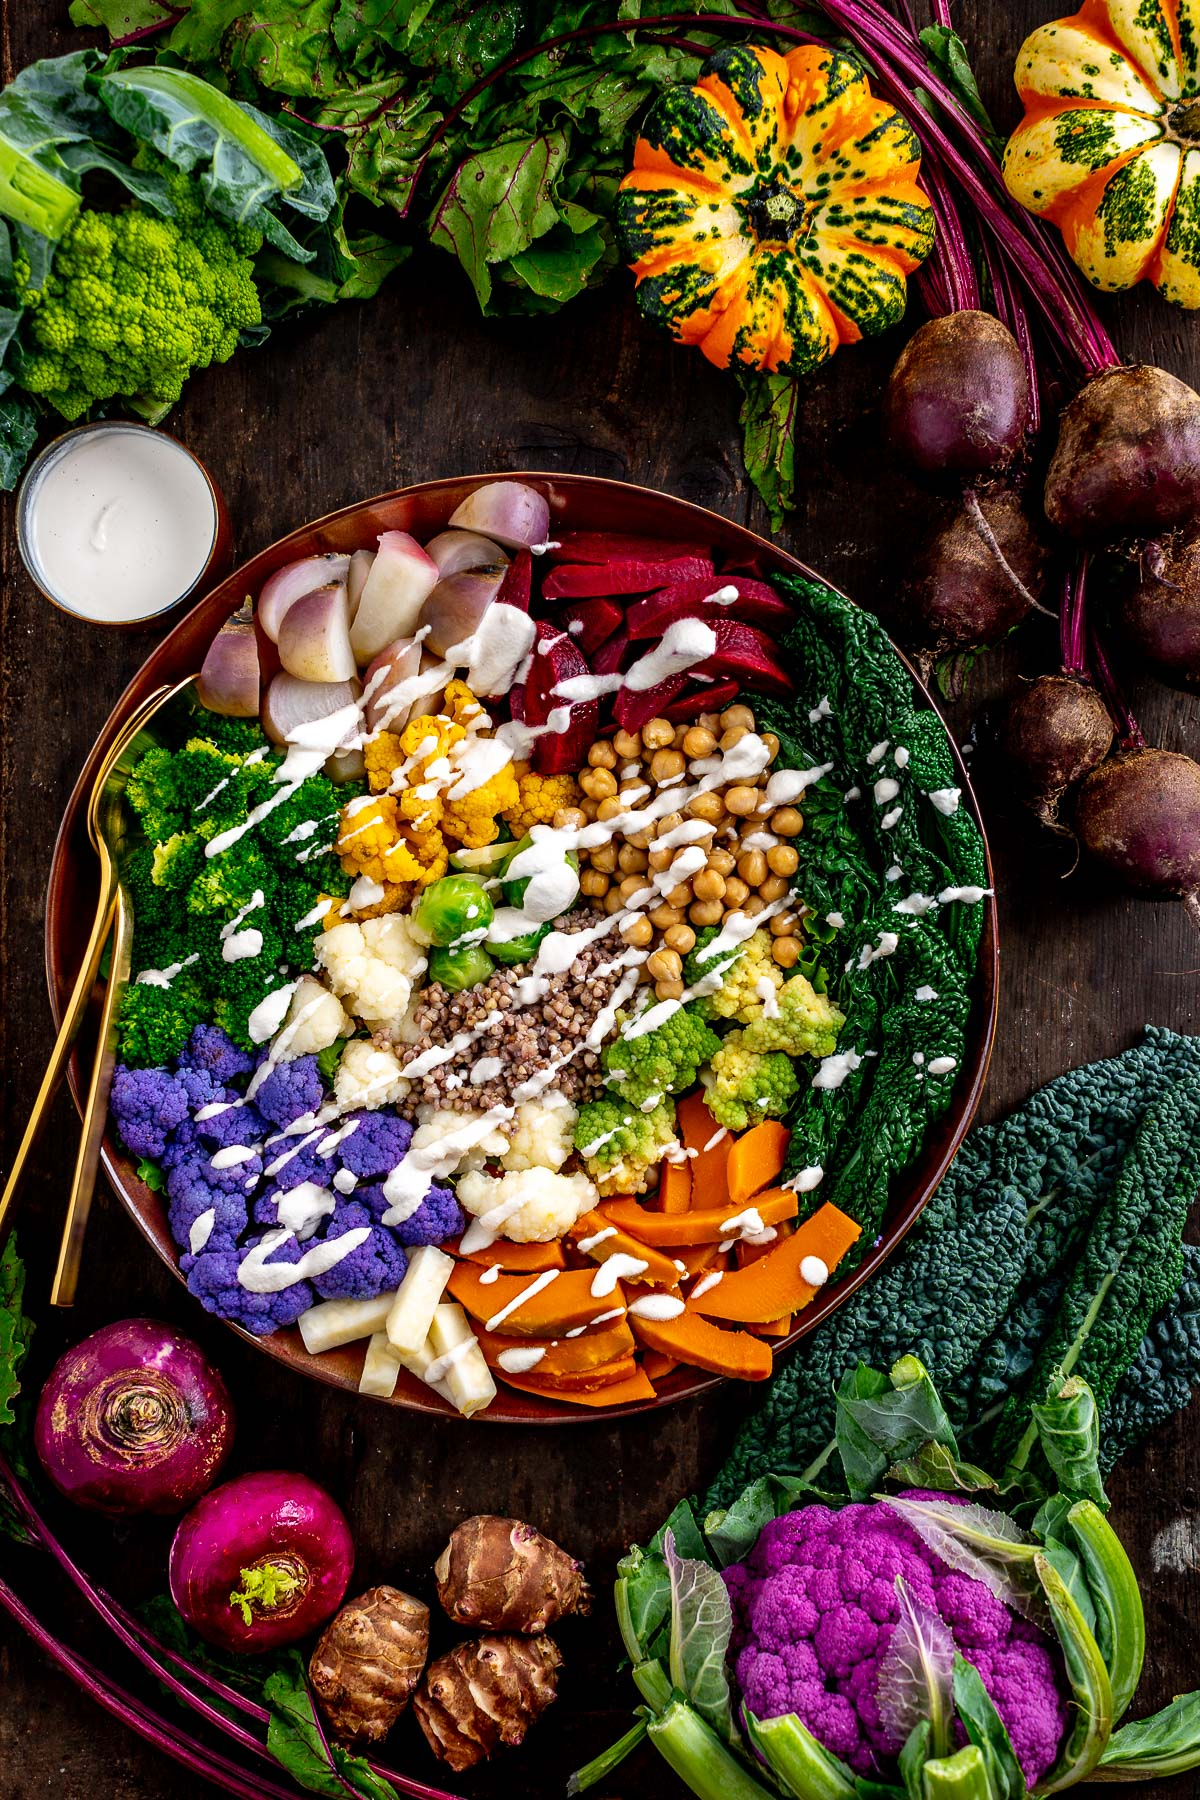 Rainbow FALL HARVEST BUDDHA BOWL with steamed vegetables and EGG-FREE AIOLI Buddha bowl autunnale insalata di verdure al vapore e aioli senza uova #vegan